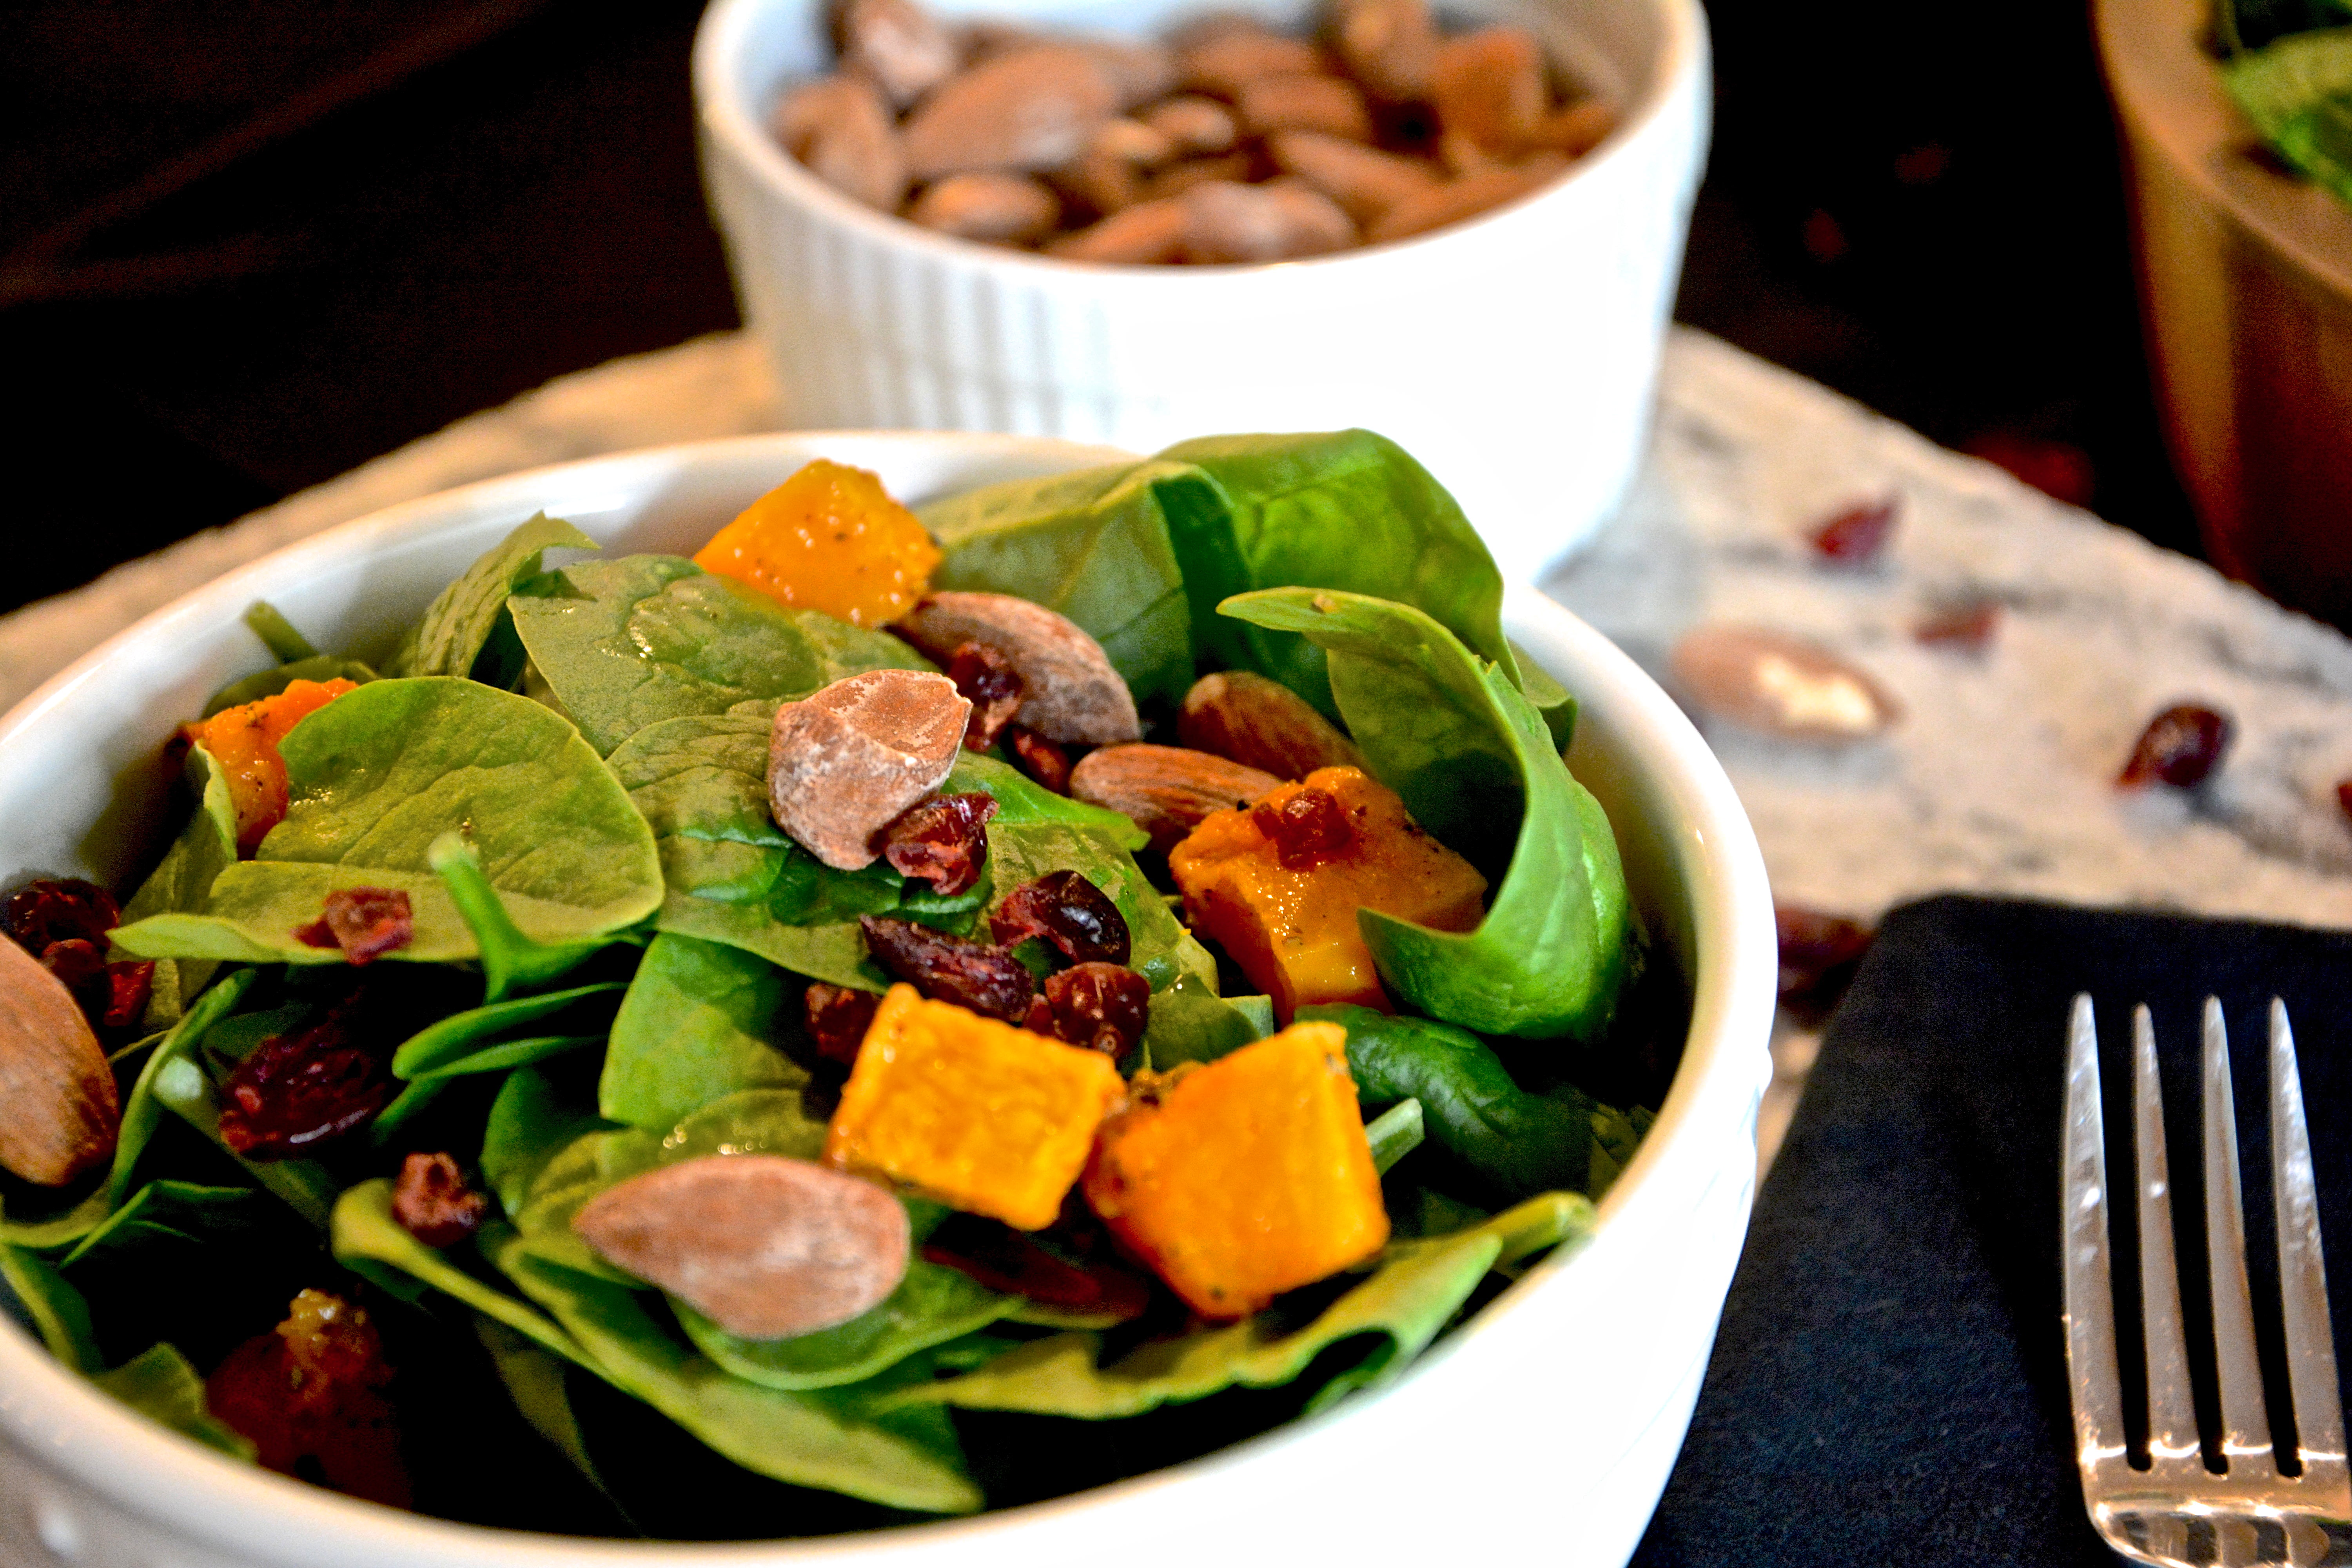 Autumn Butternut Squash Salad with Maple Balsamic Dressing